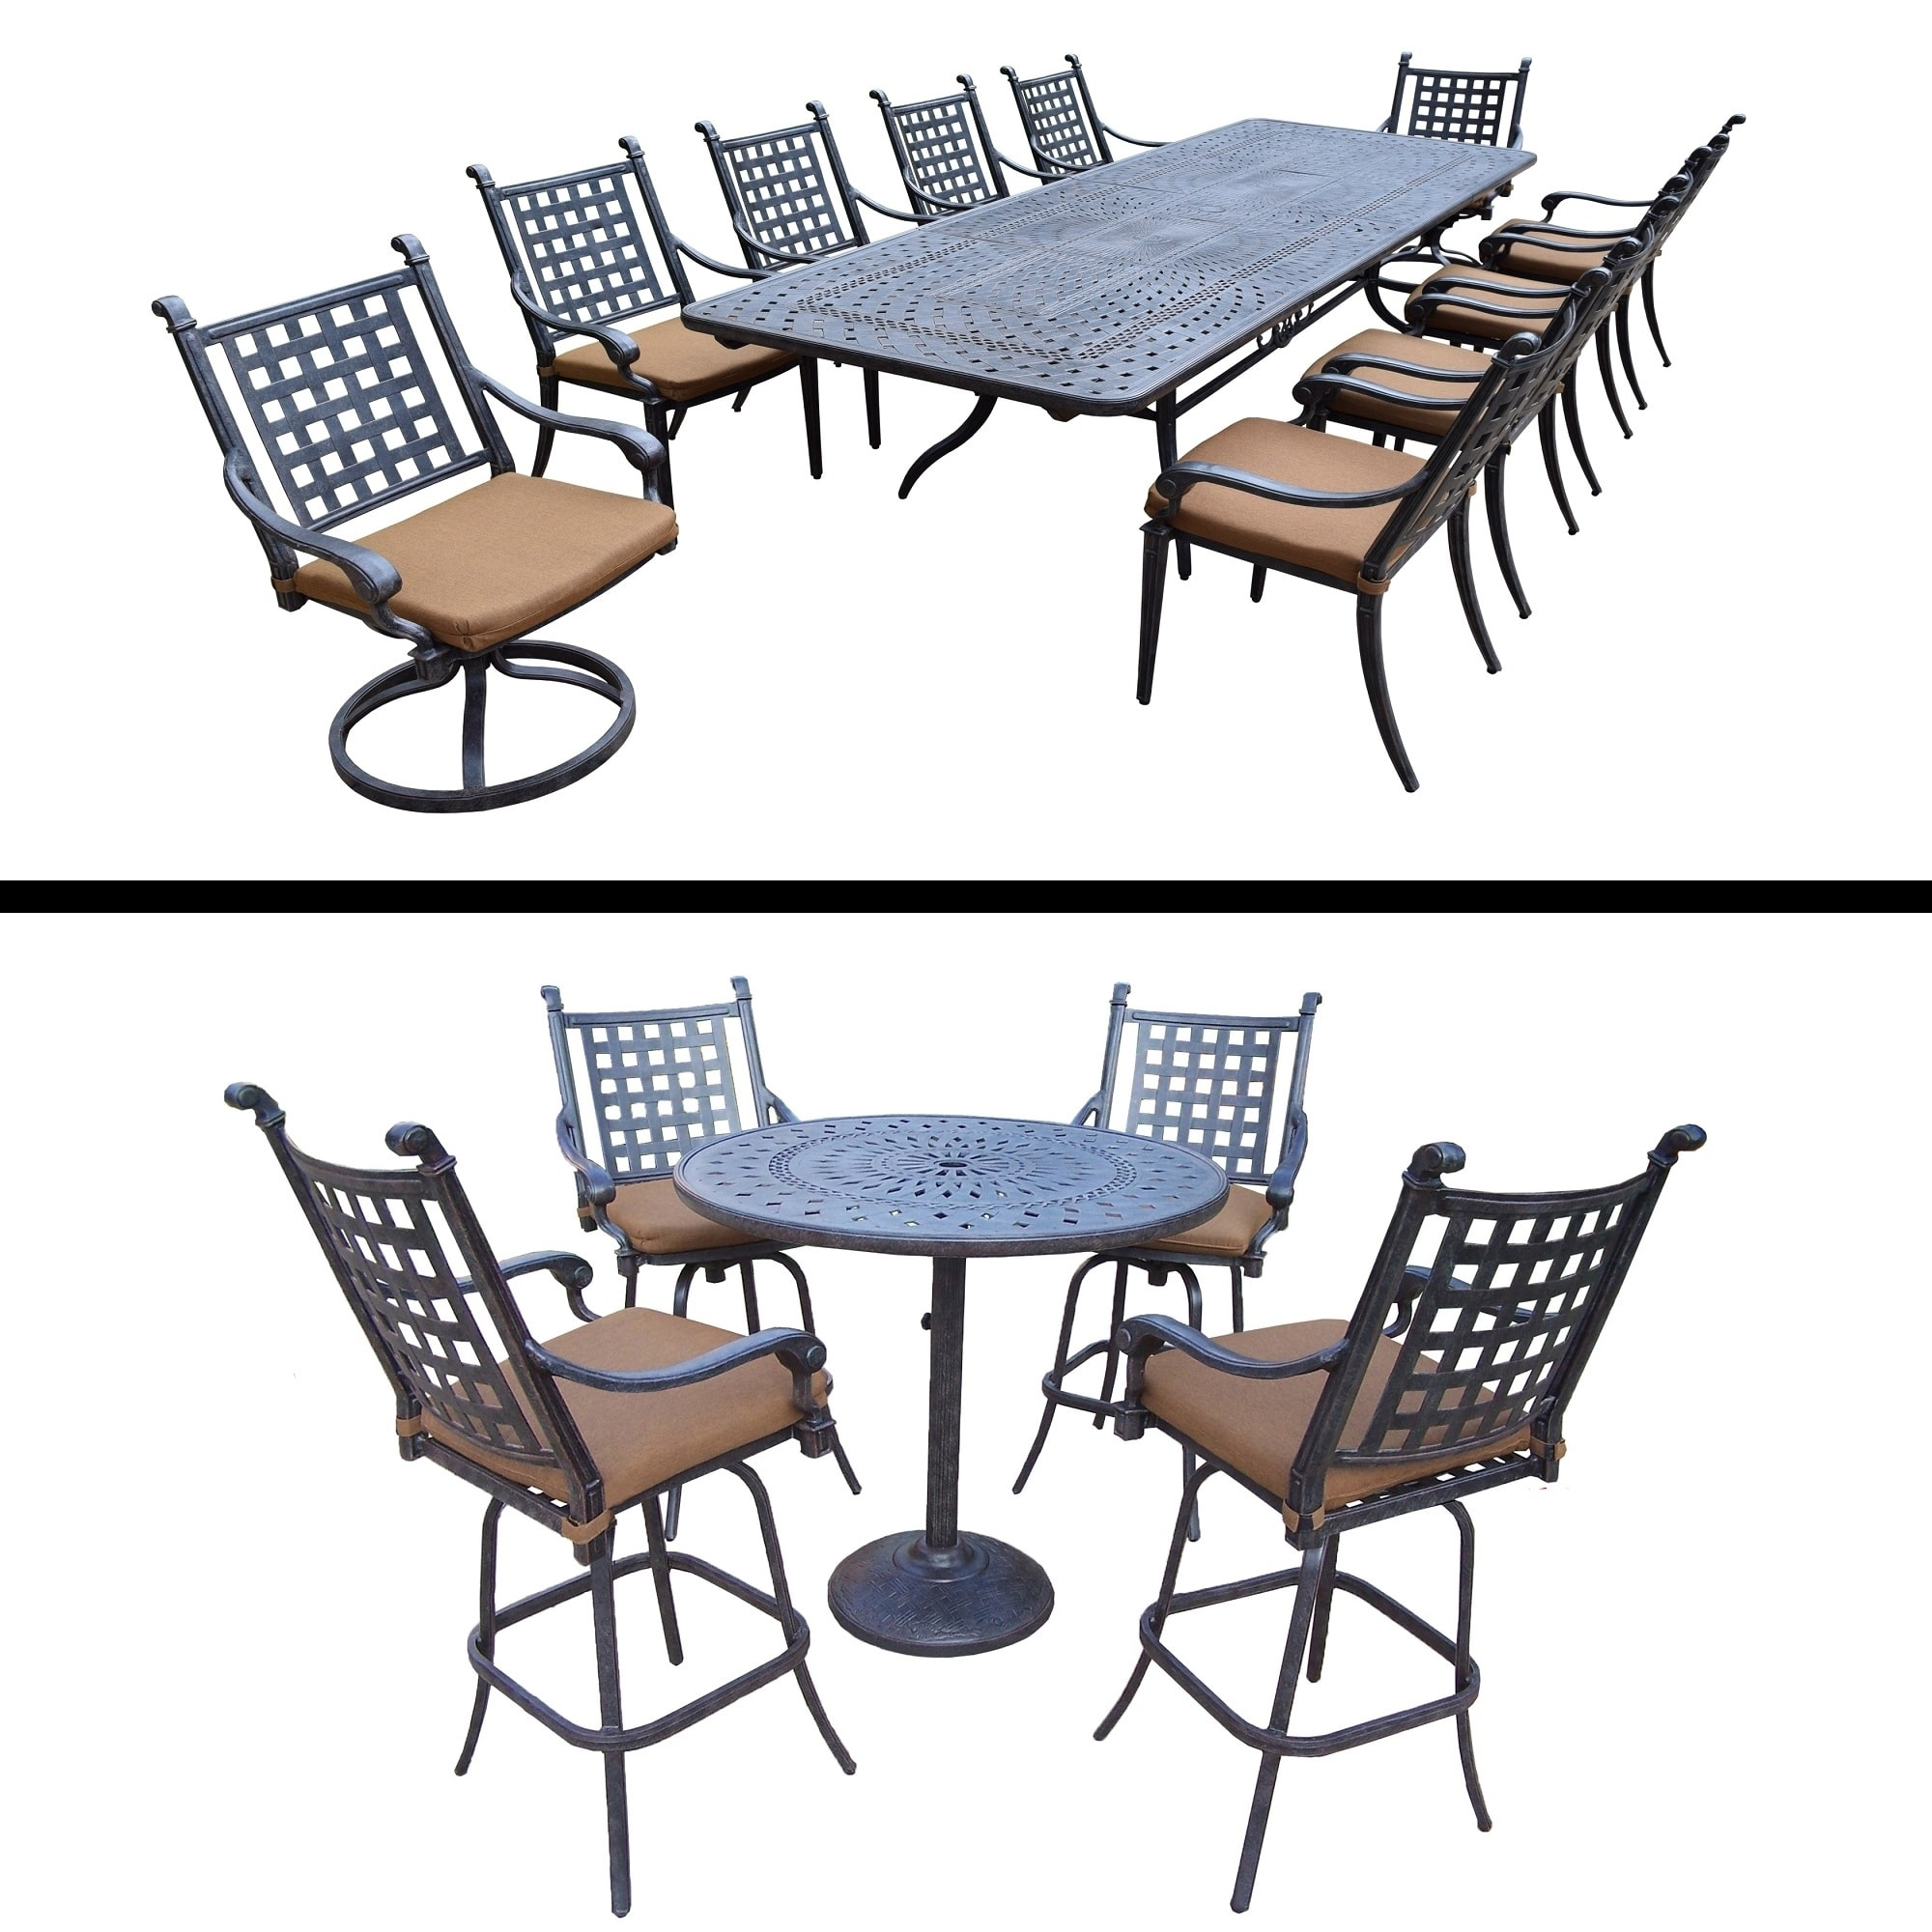 Oakland Living 11 Pc Dining Room Set with Extendable Table and 5 Pc Bar Set by Overstock